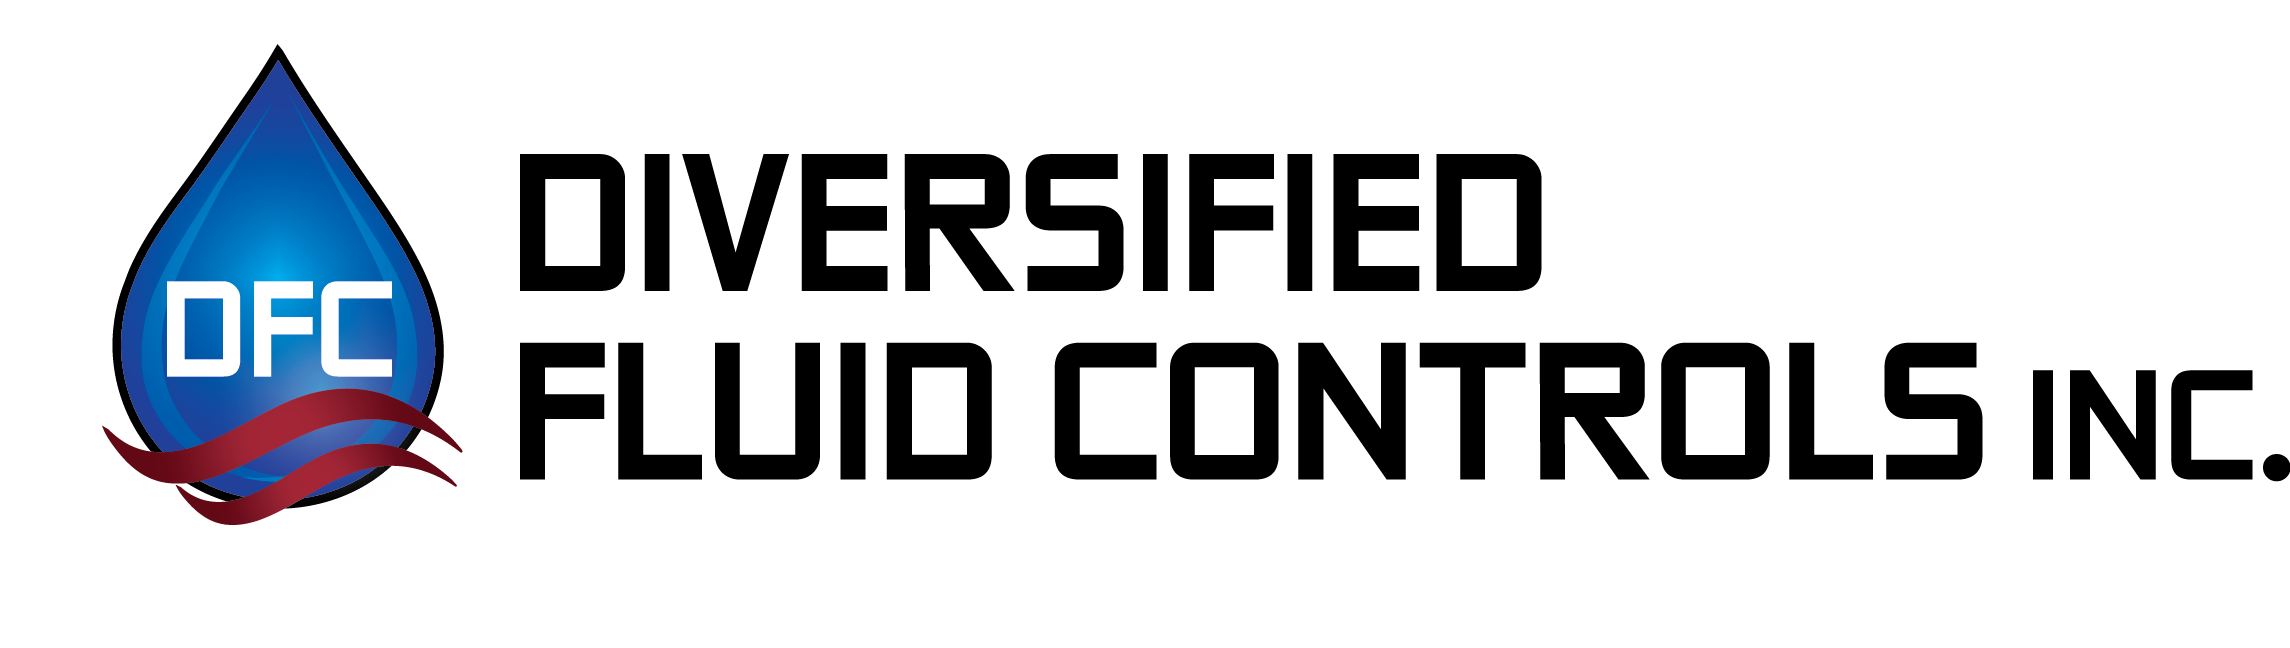 DFC_logo_Stacked.png